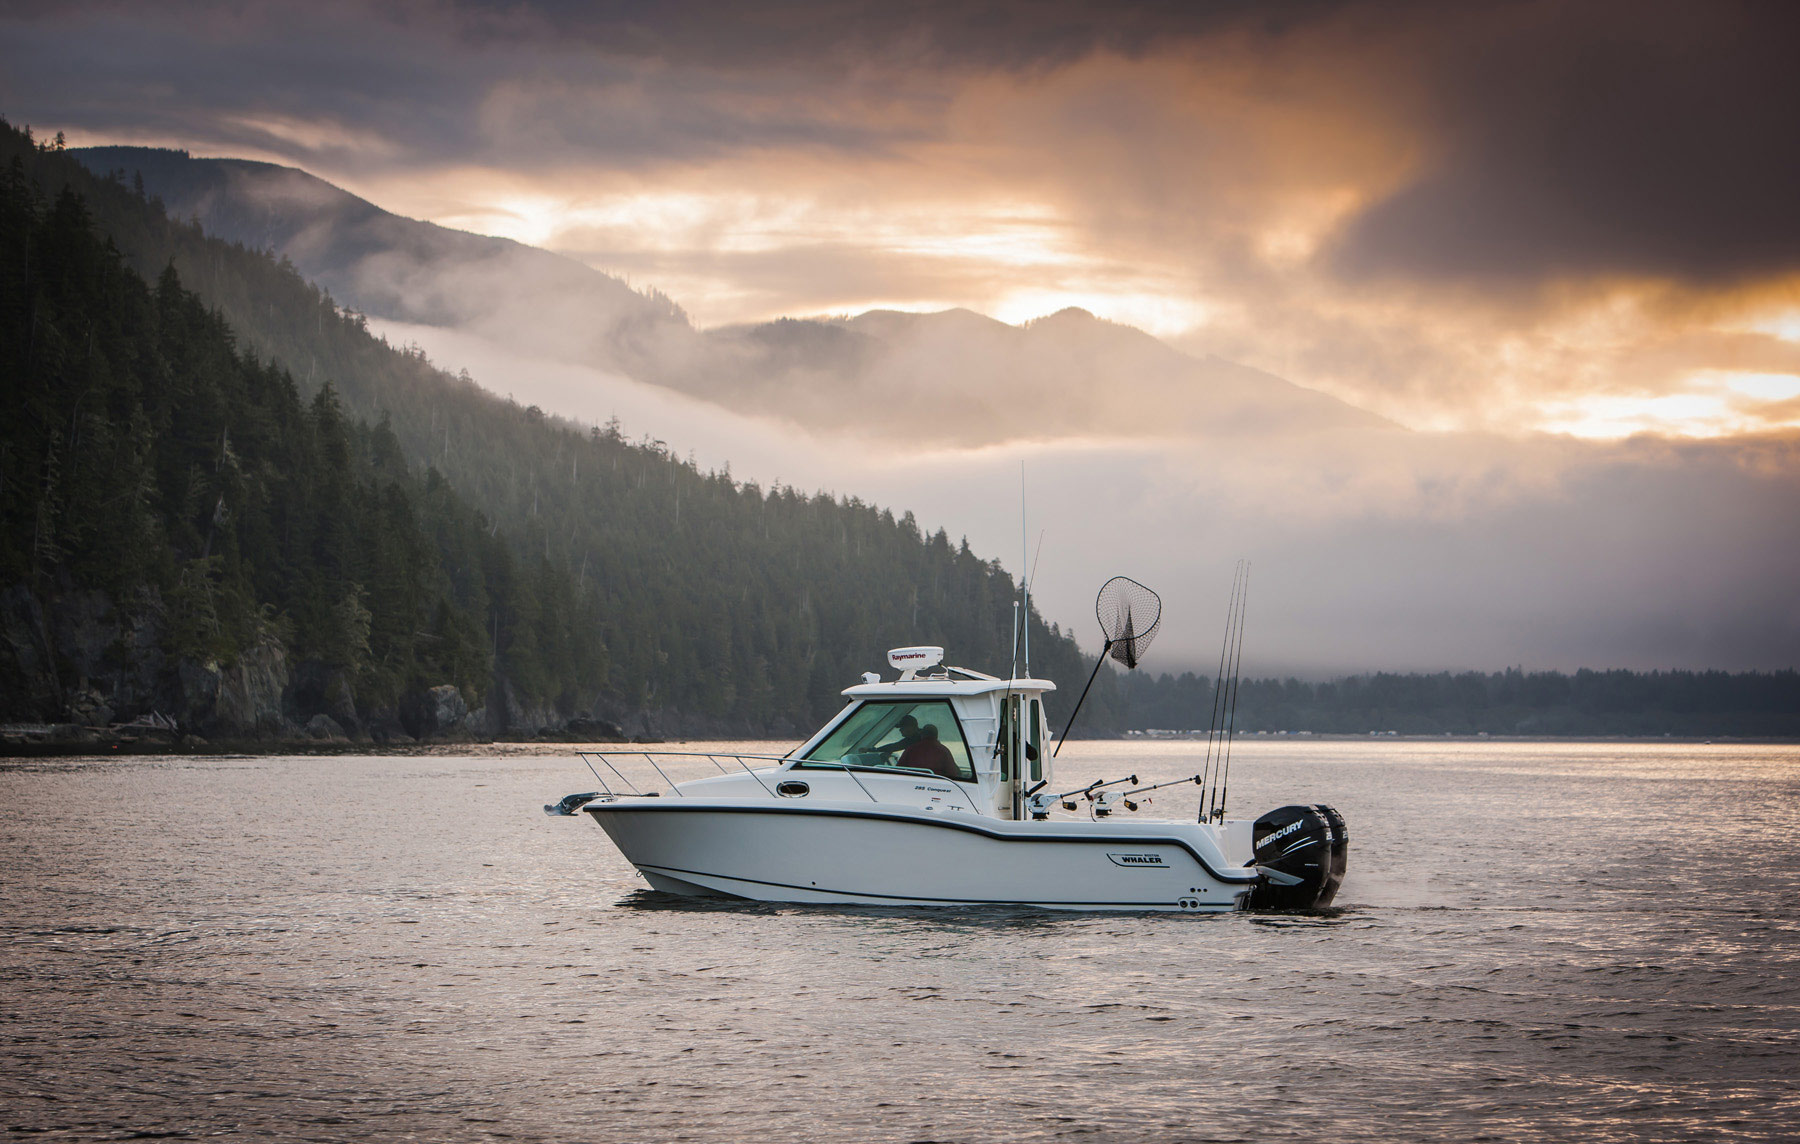 Fishing Boating Photographer Richard Steinberger